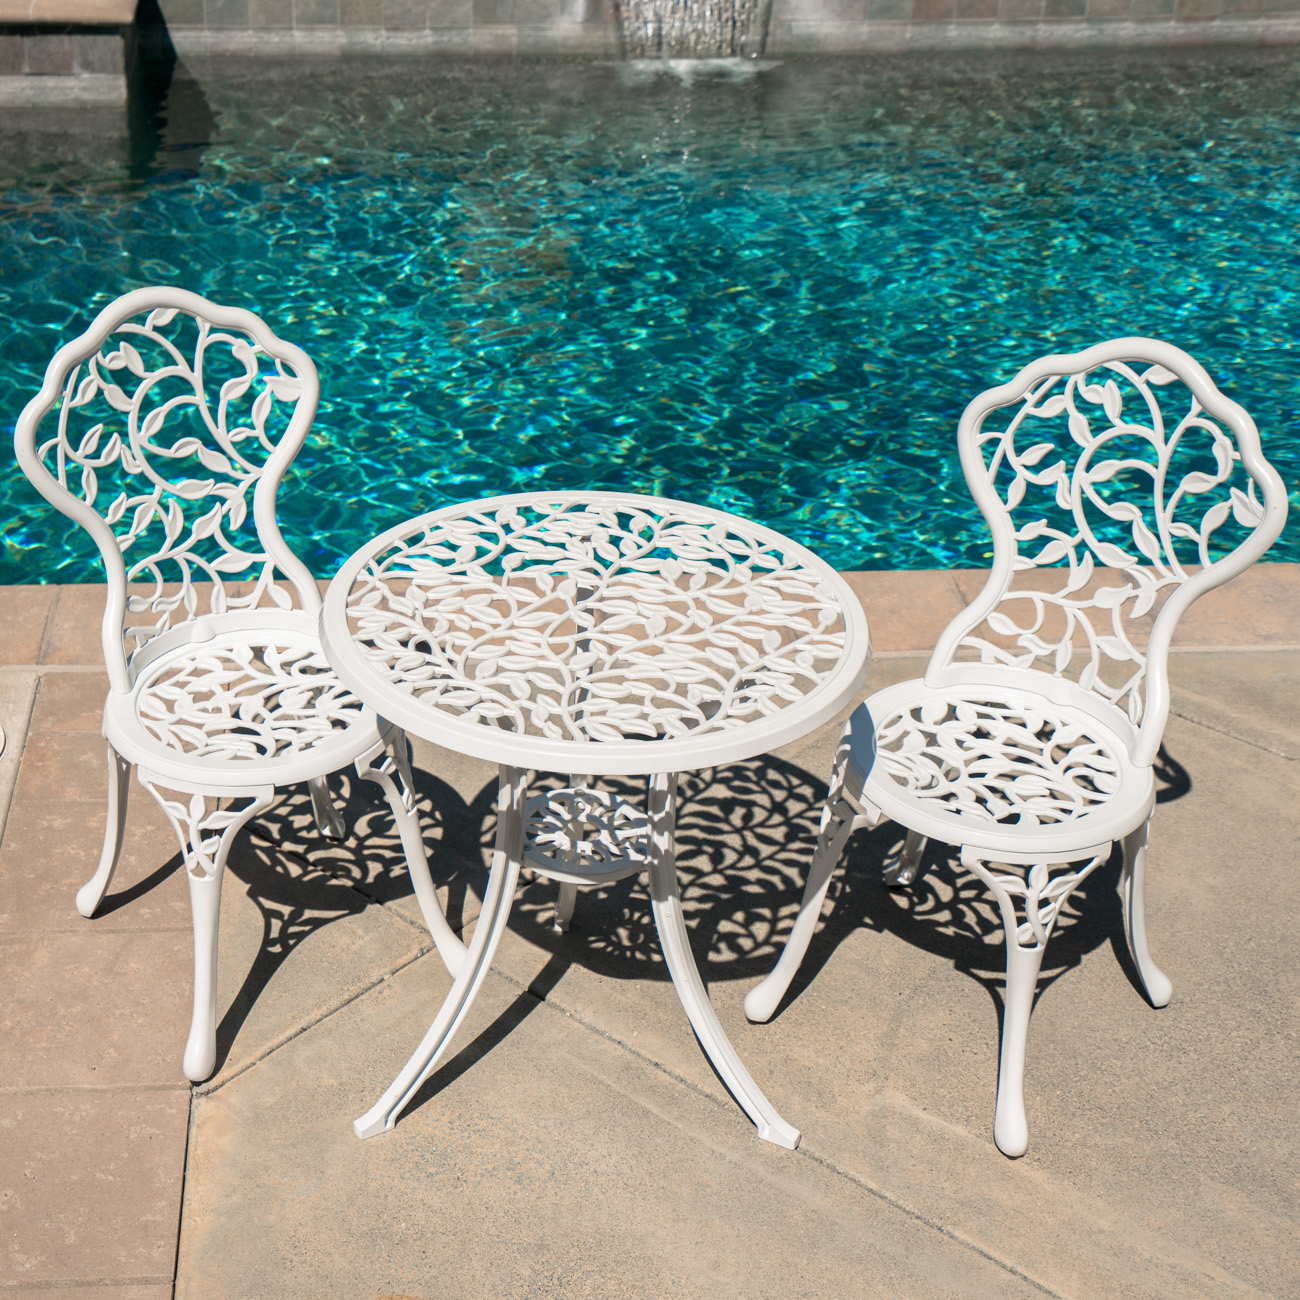 Patio table chairs set ivory iron furniture balcony pool for Poolside table and chairs